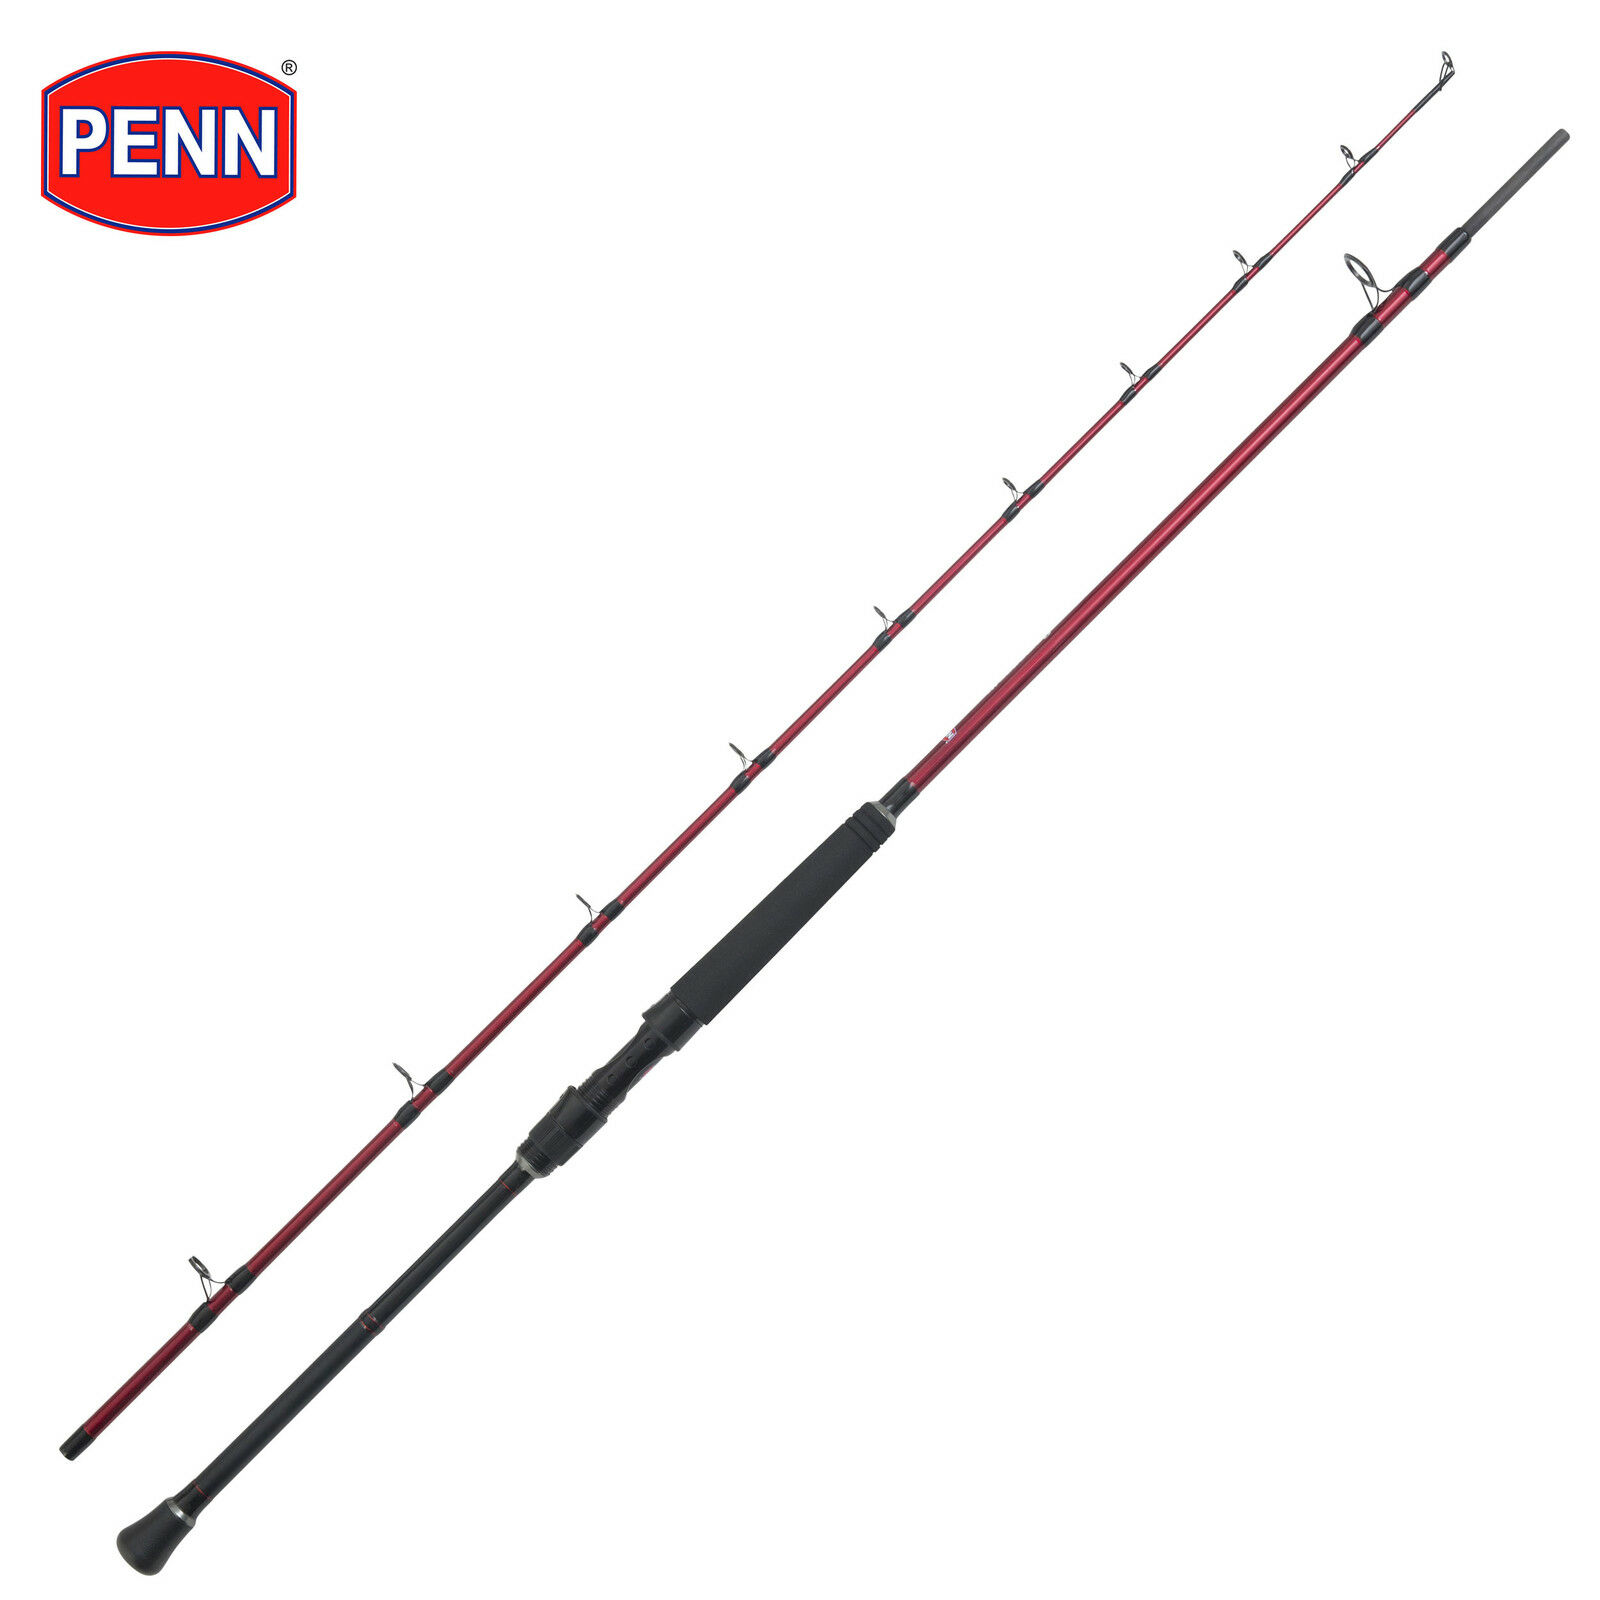 New PENN Rampage II  Mk2 Boat Fishing Rod 7'6' 2pc Equal Sections 30lb Class  free delivery and returns